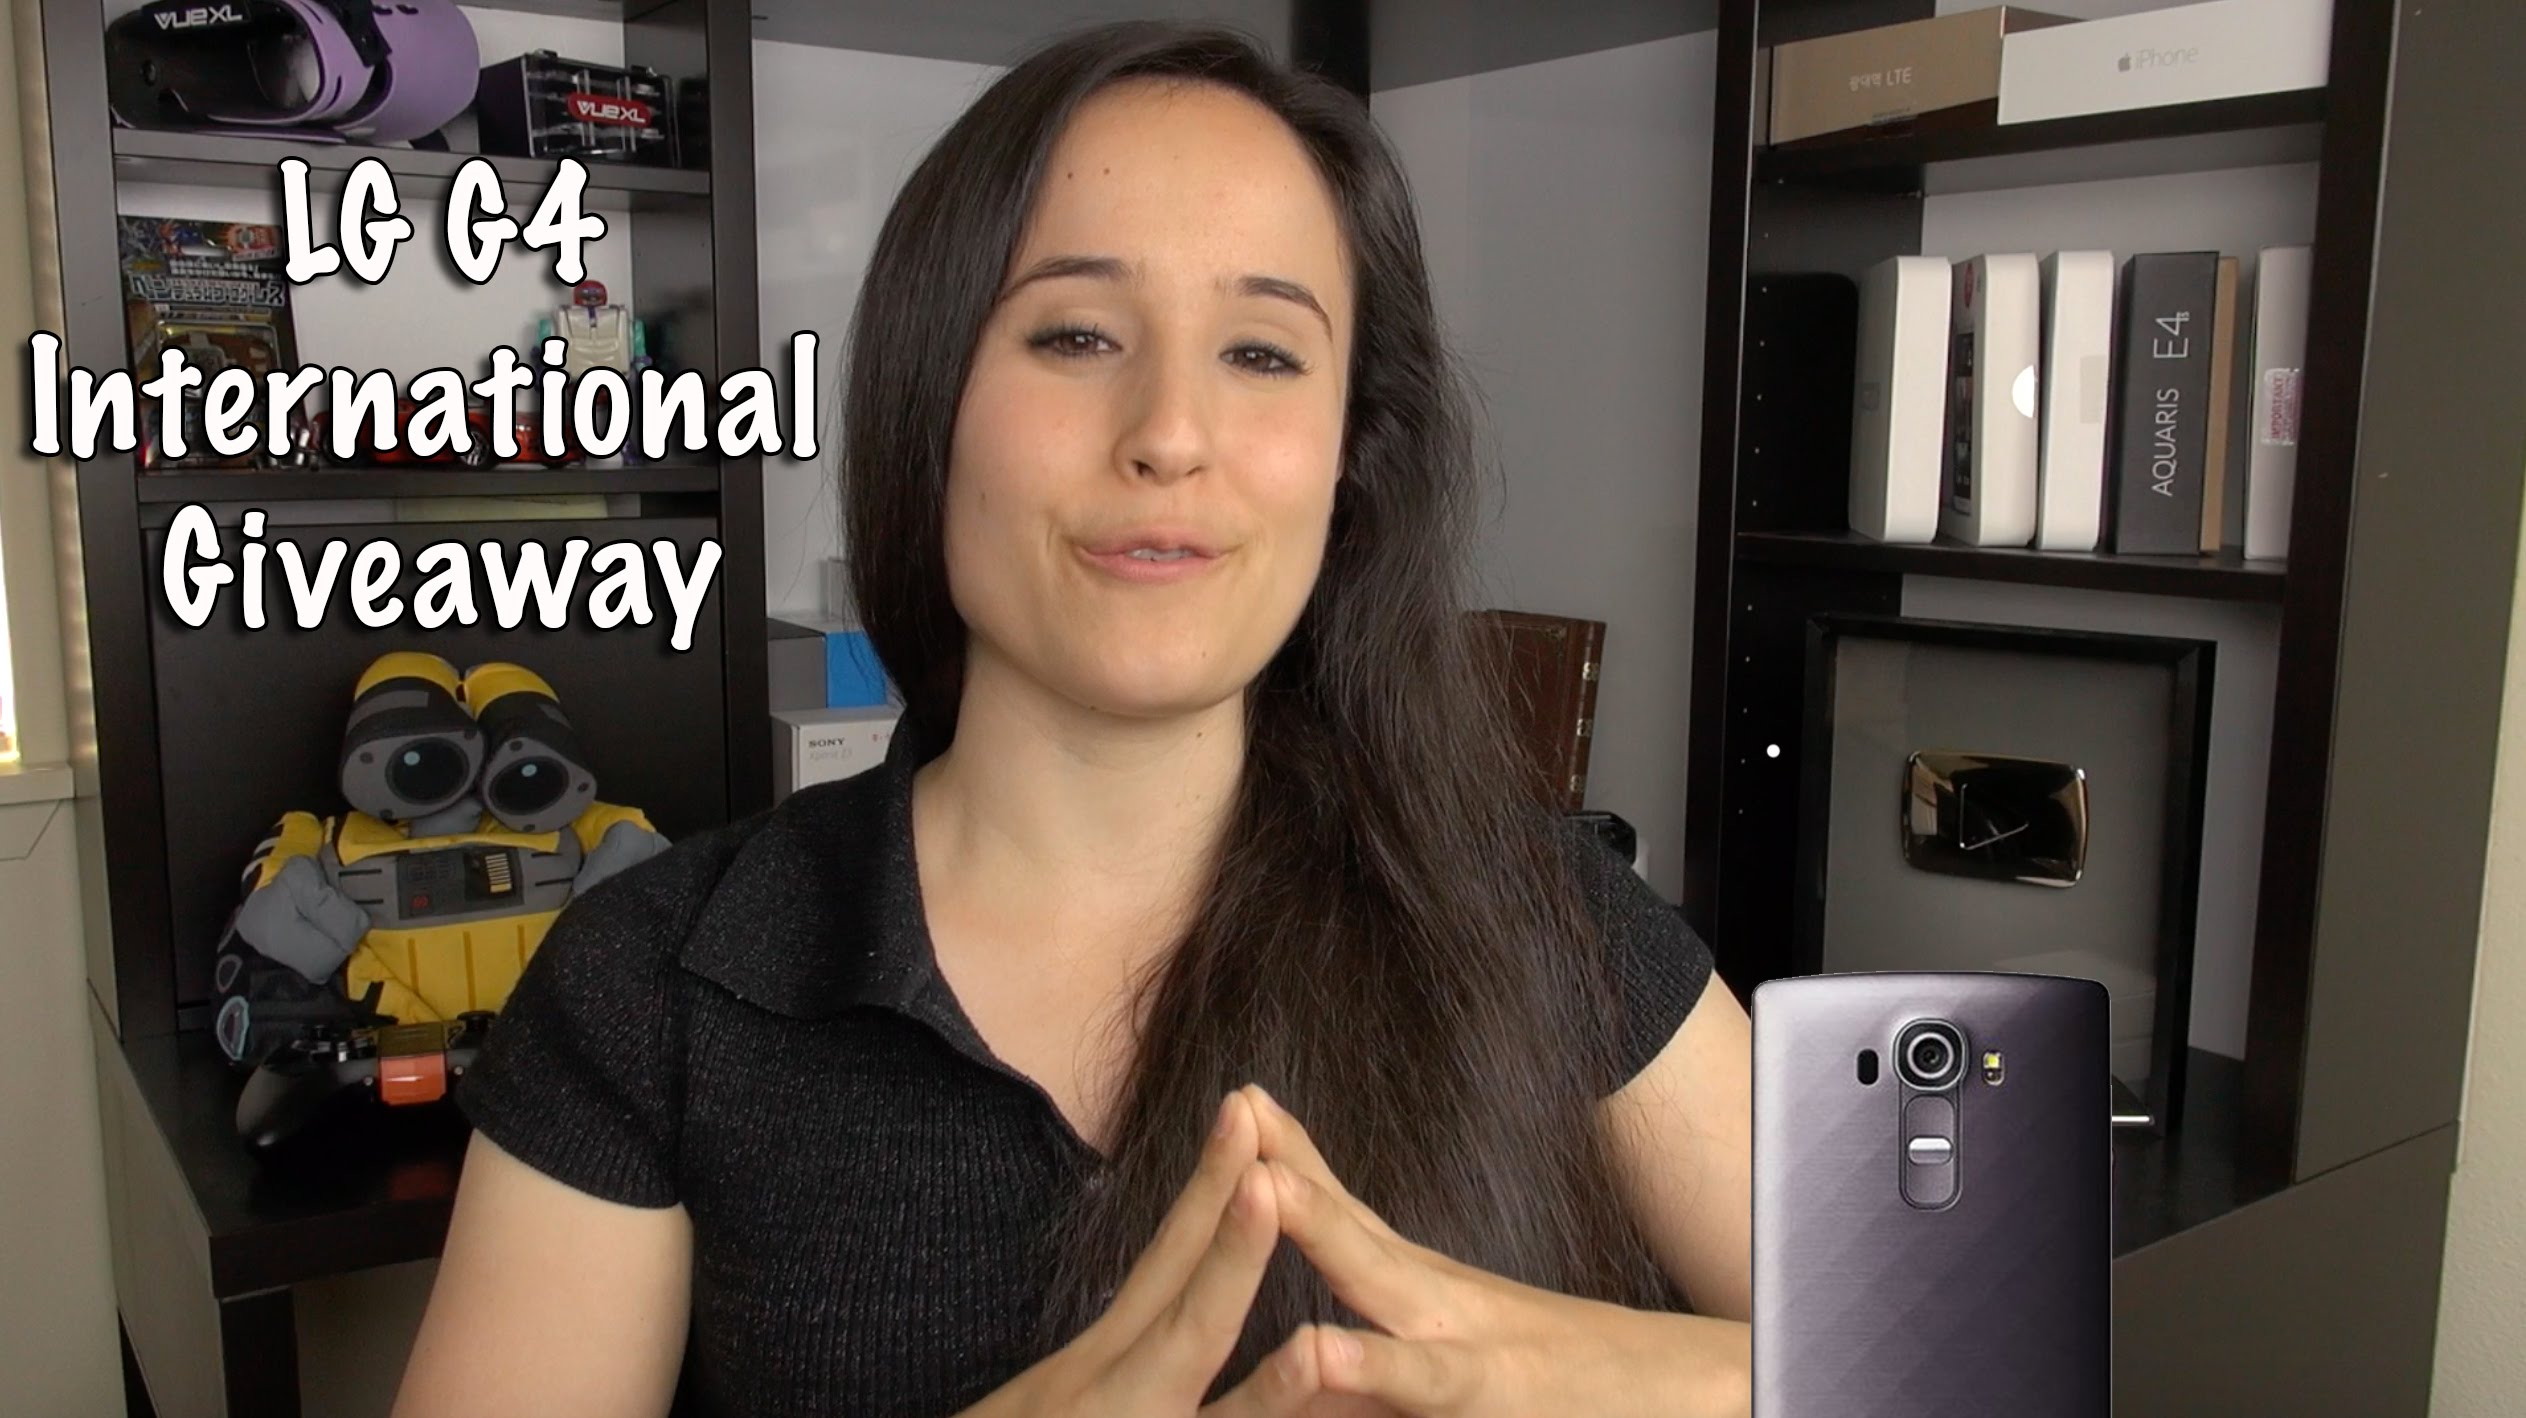 LG G4: International Giveaway!